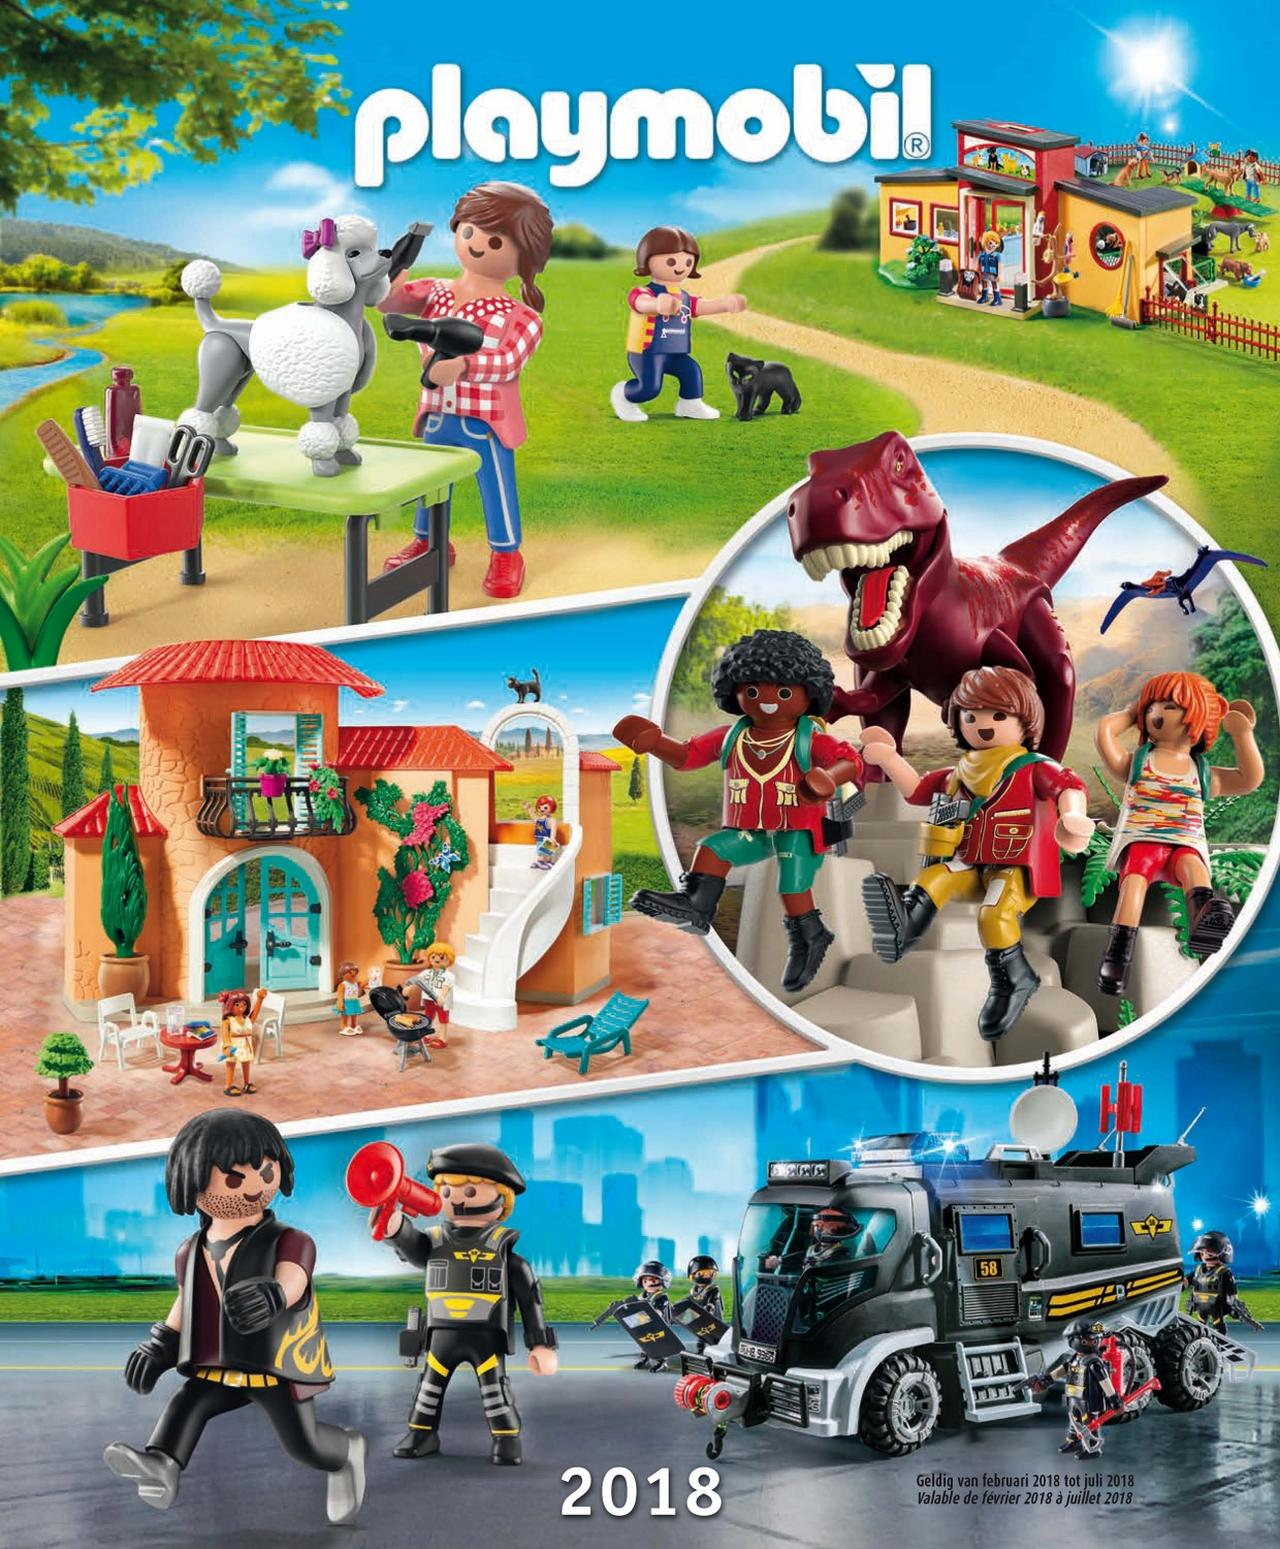 Playmobil Catalogus jan-juli 2018